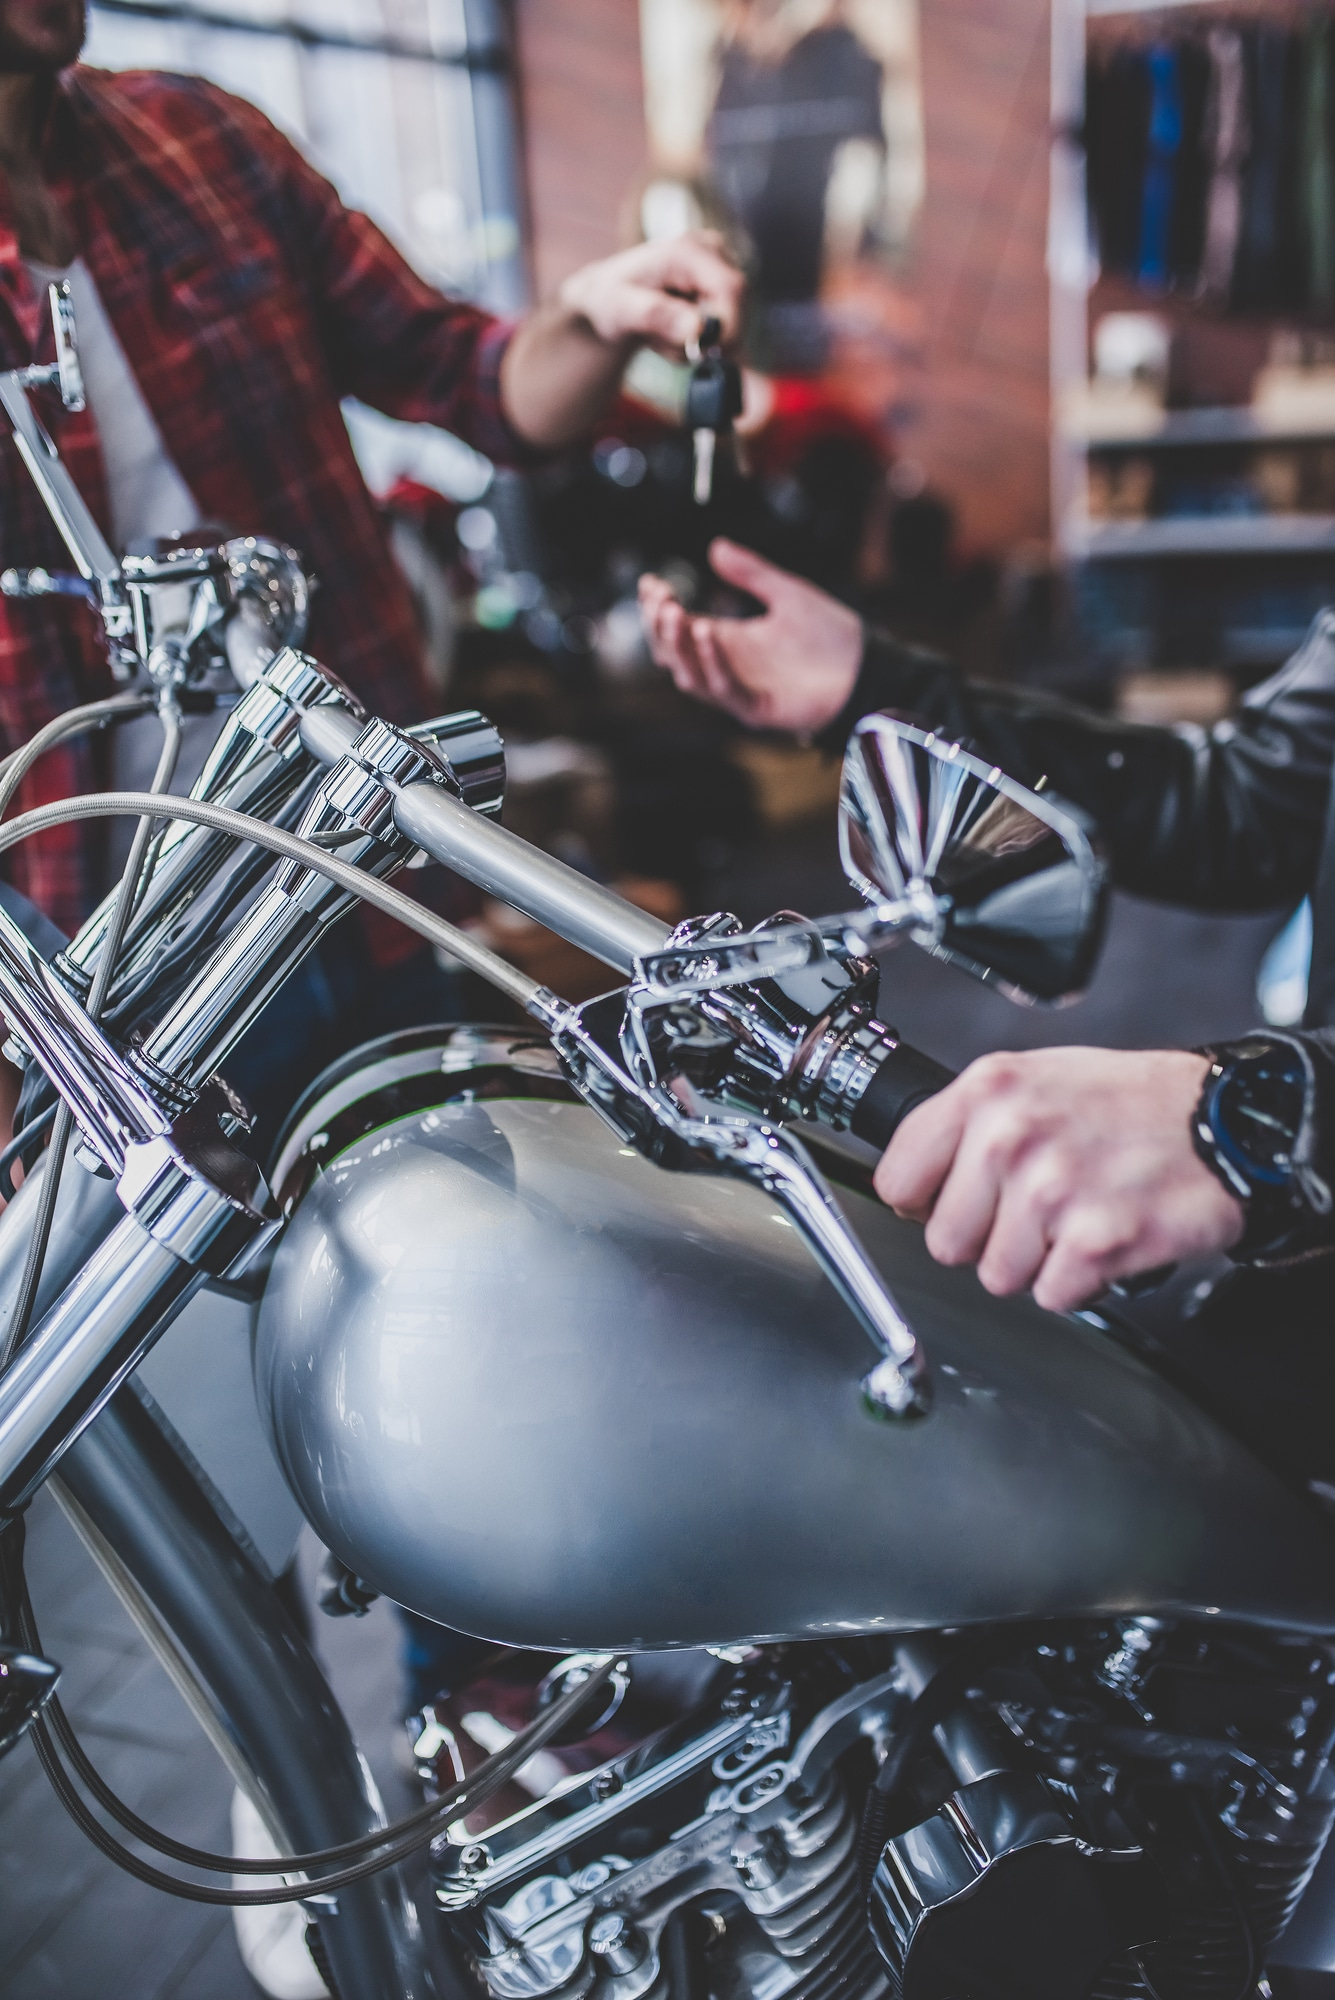 About to Buy a New Motorbike? Make Sure to Get These 7 Accessories Too